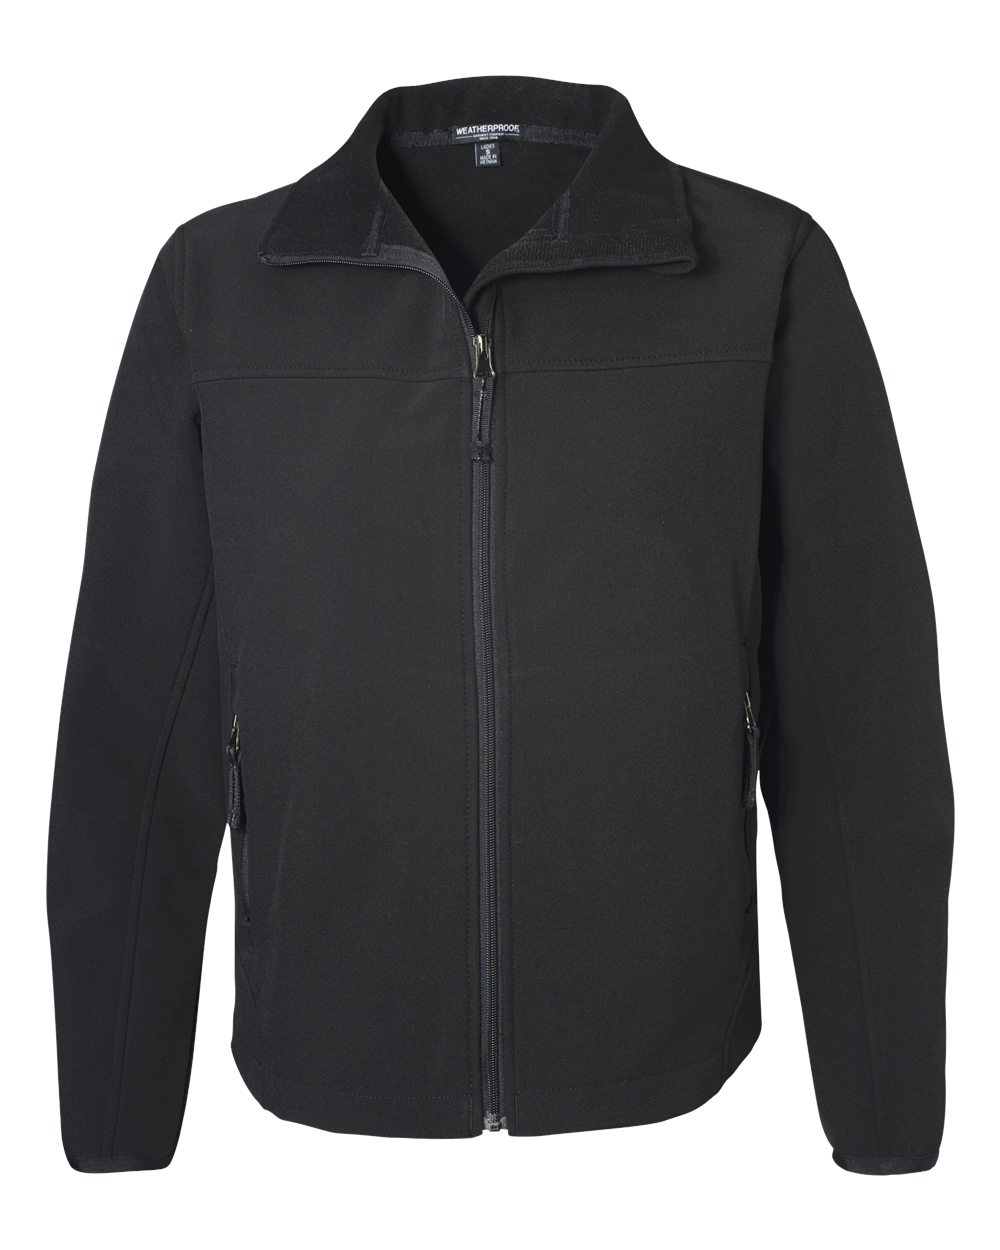 Weatherproof W6500 Ladies' Soft Shell Jacket